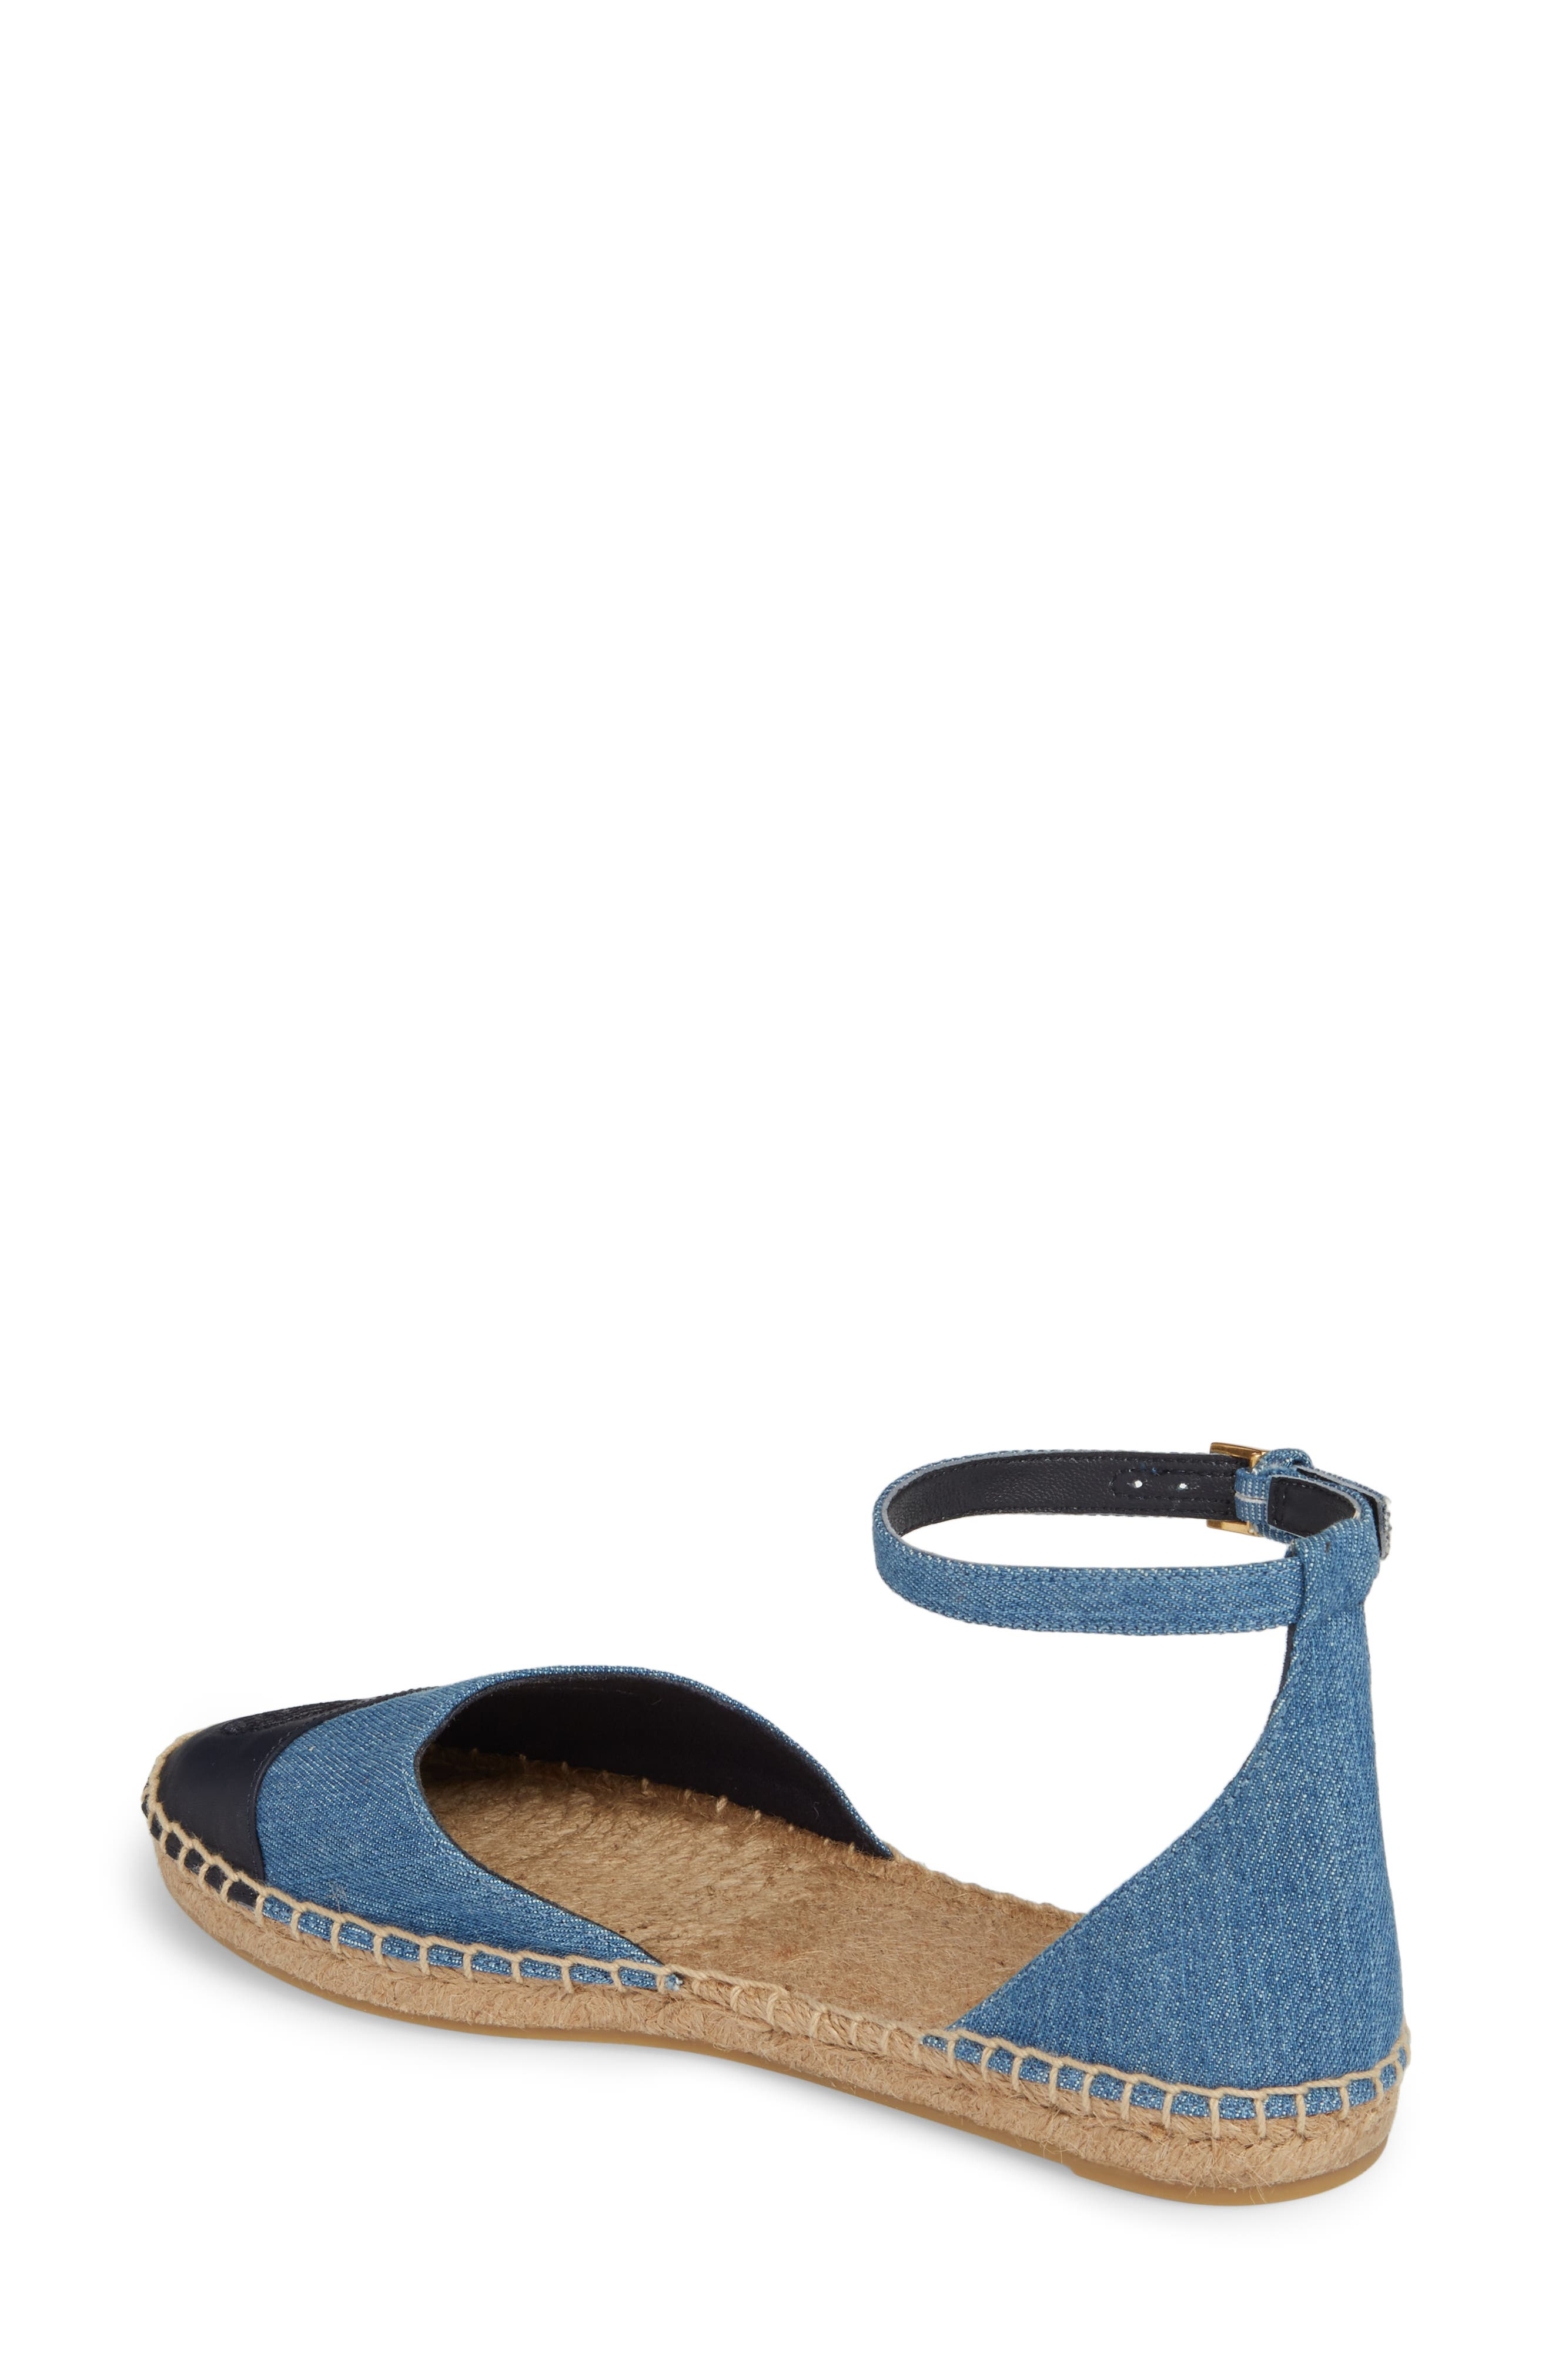 Ankle Strap Espadrille,                             Alternate thumbnail 2, color,                             Denim Chambray/ Perfect Navy